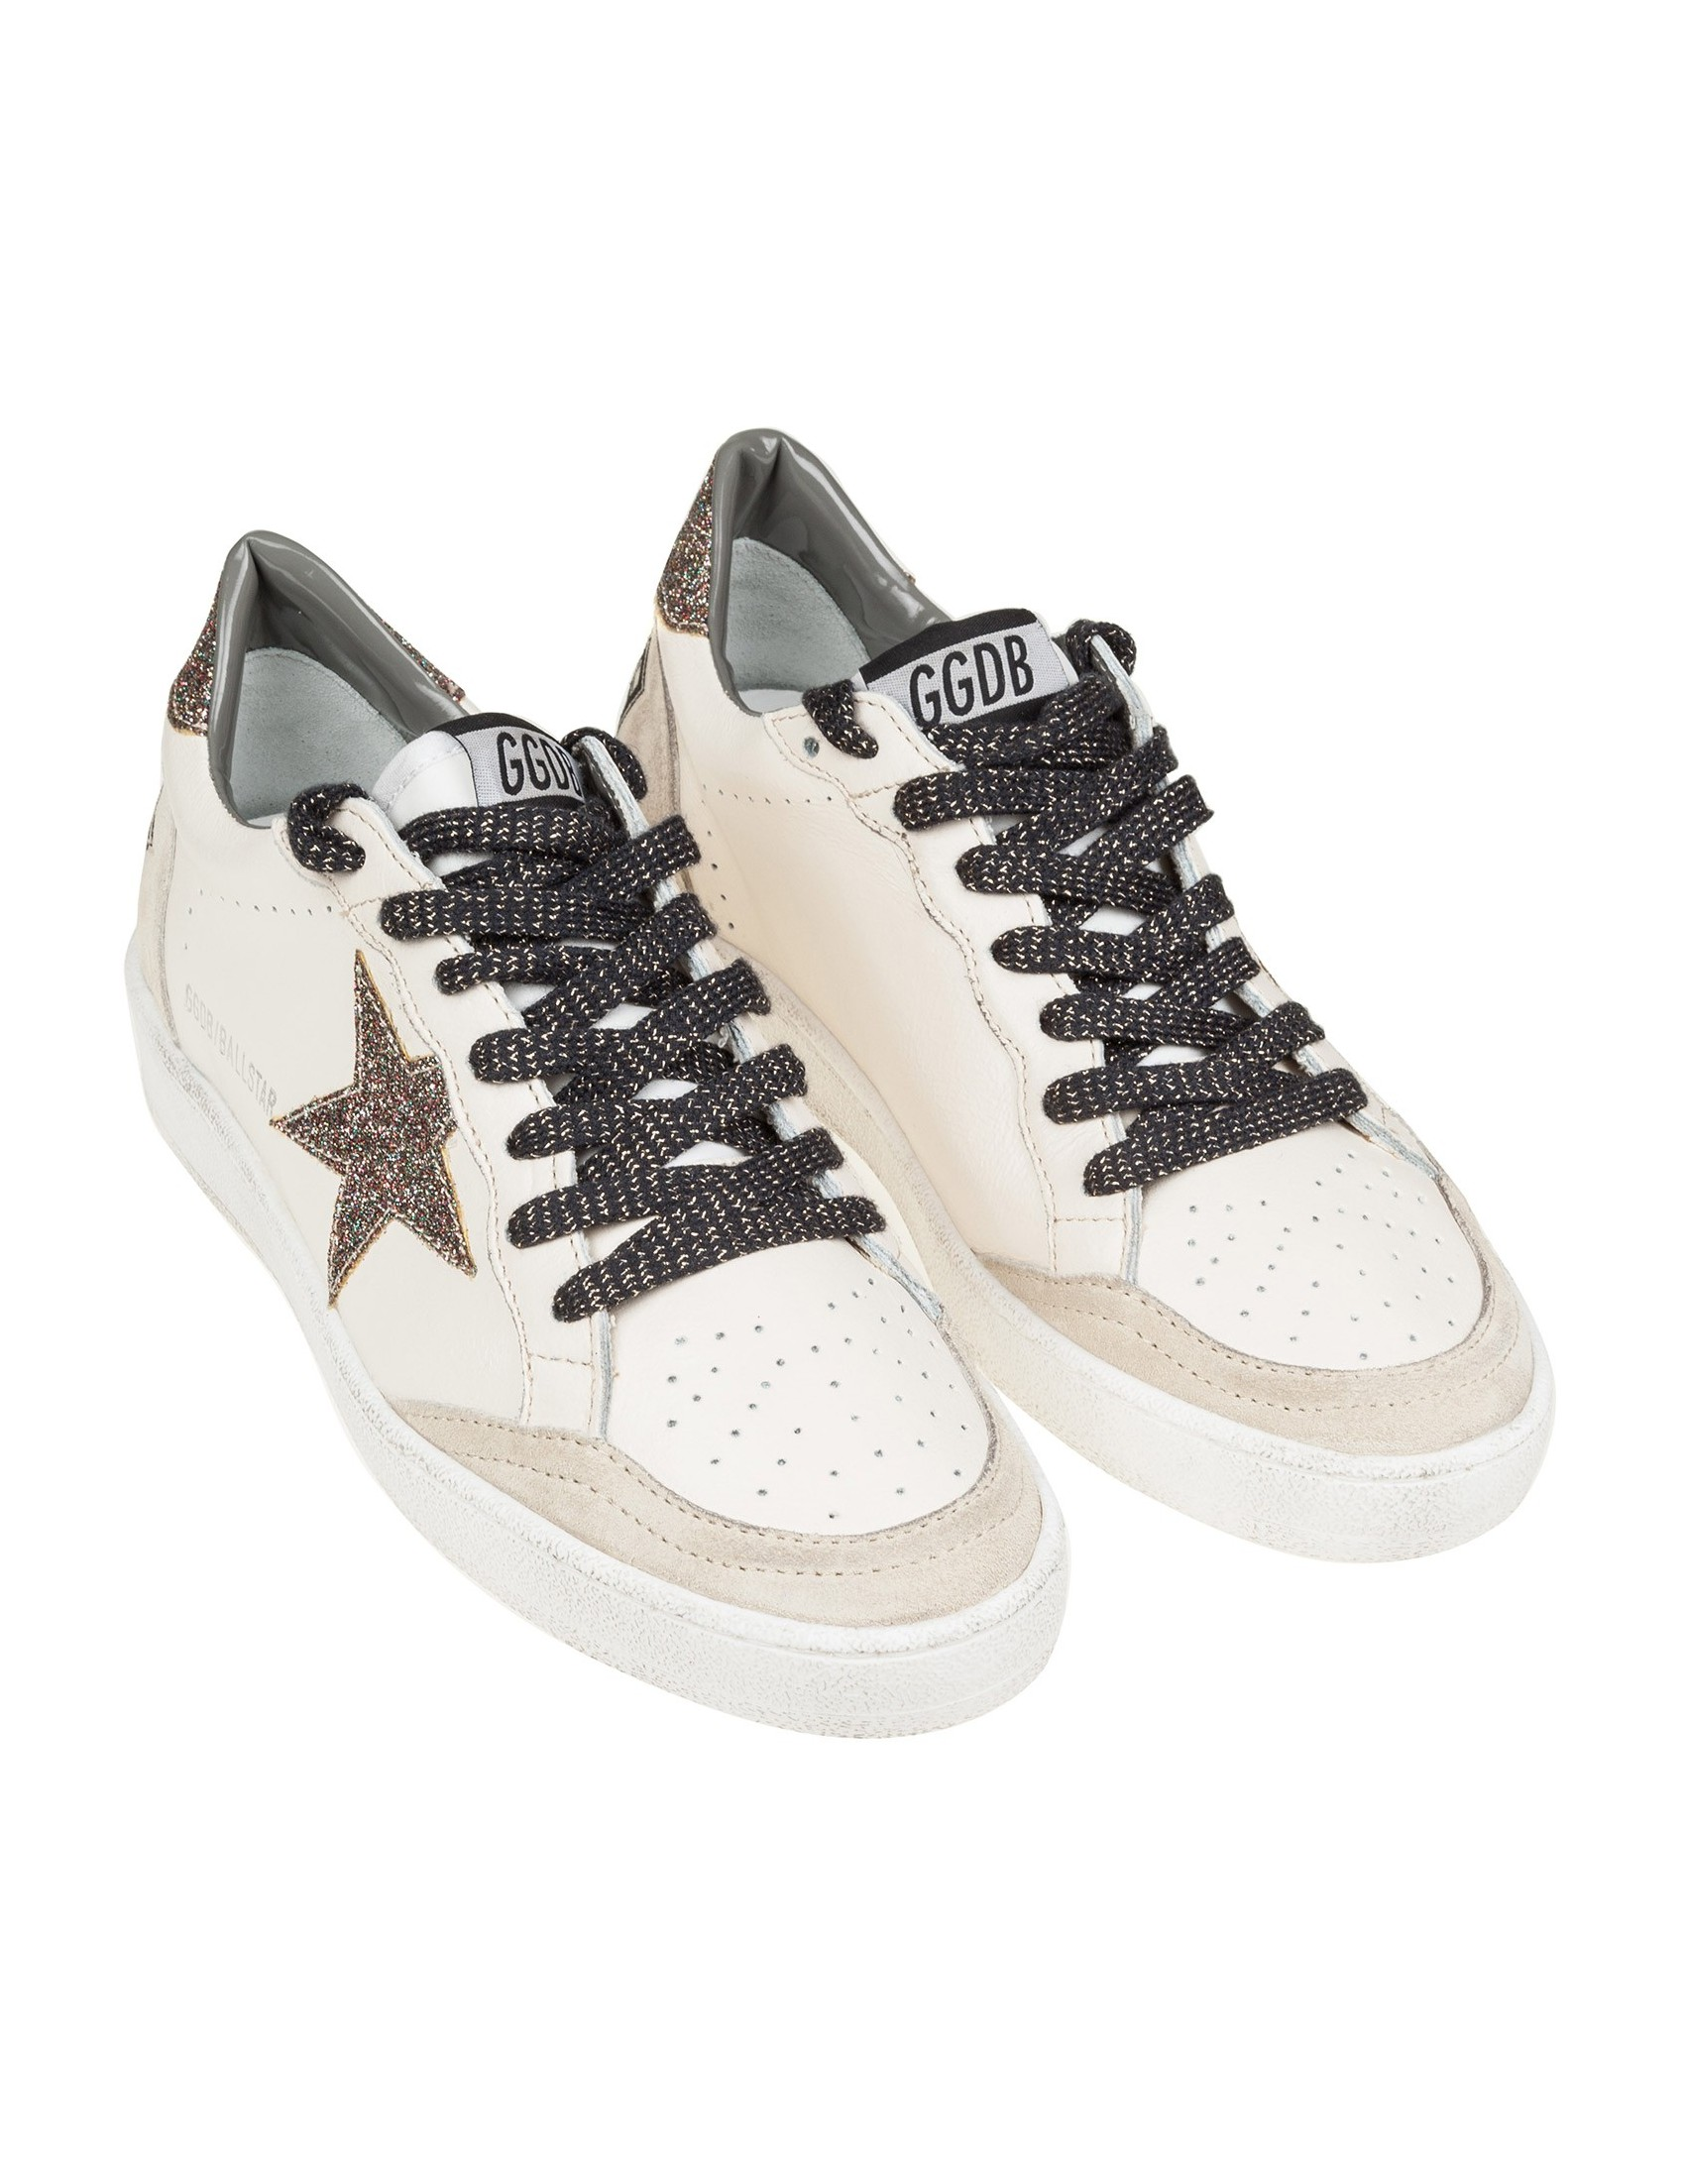 Stelle Goose Sneakers Golden Star Con Ball Glitter vFanwqxCX